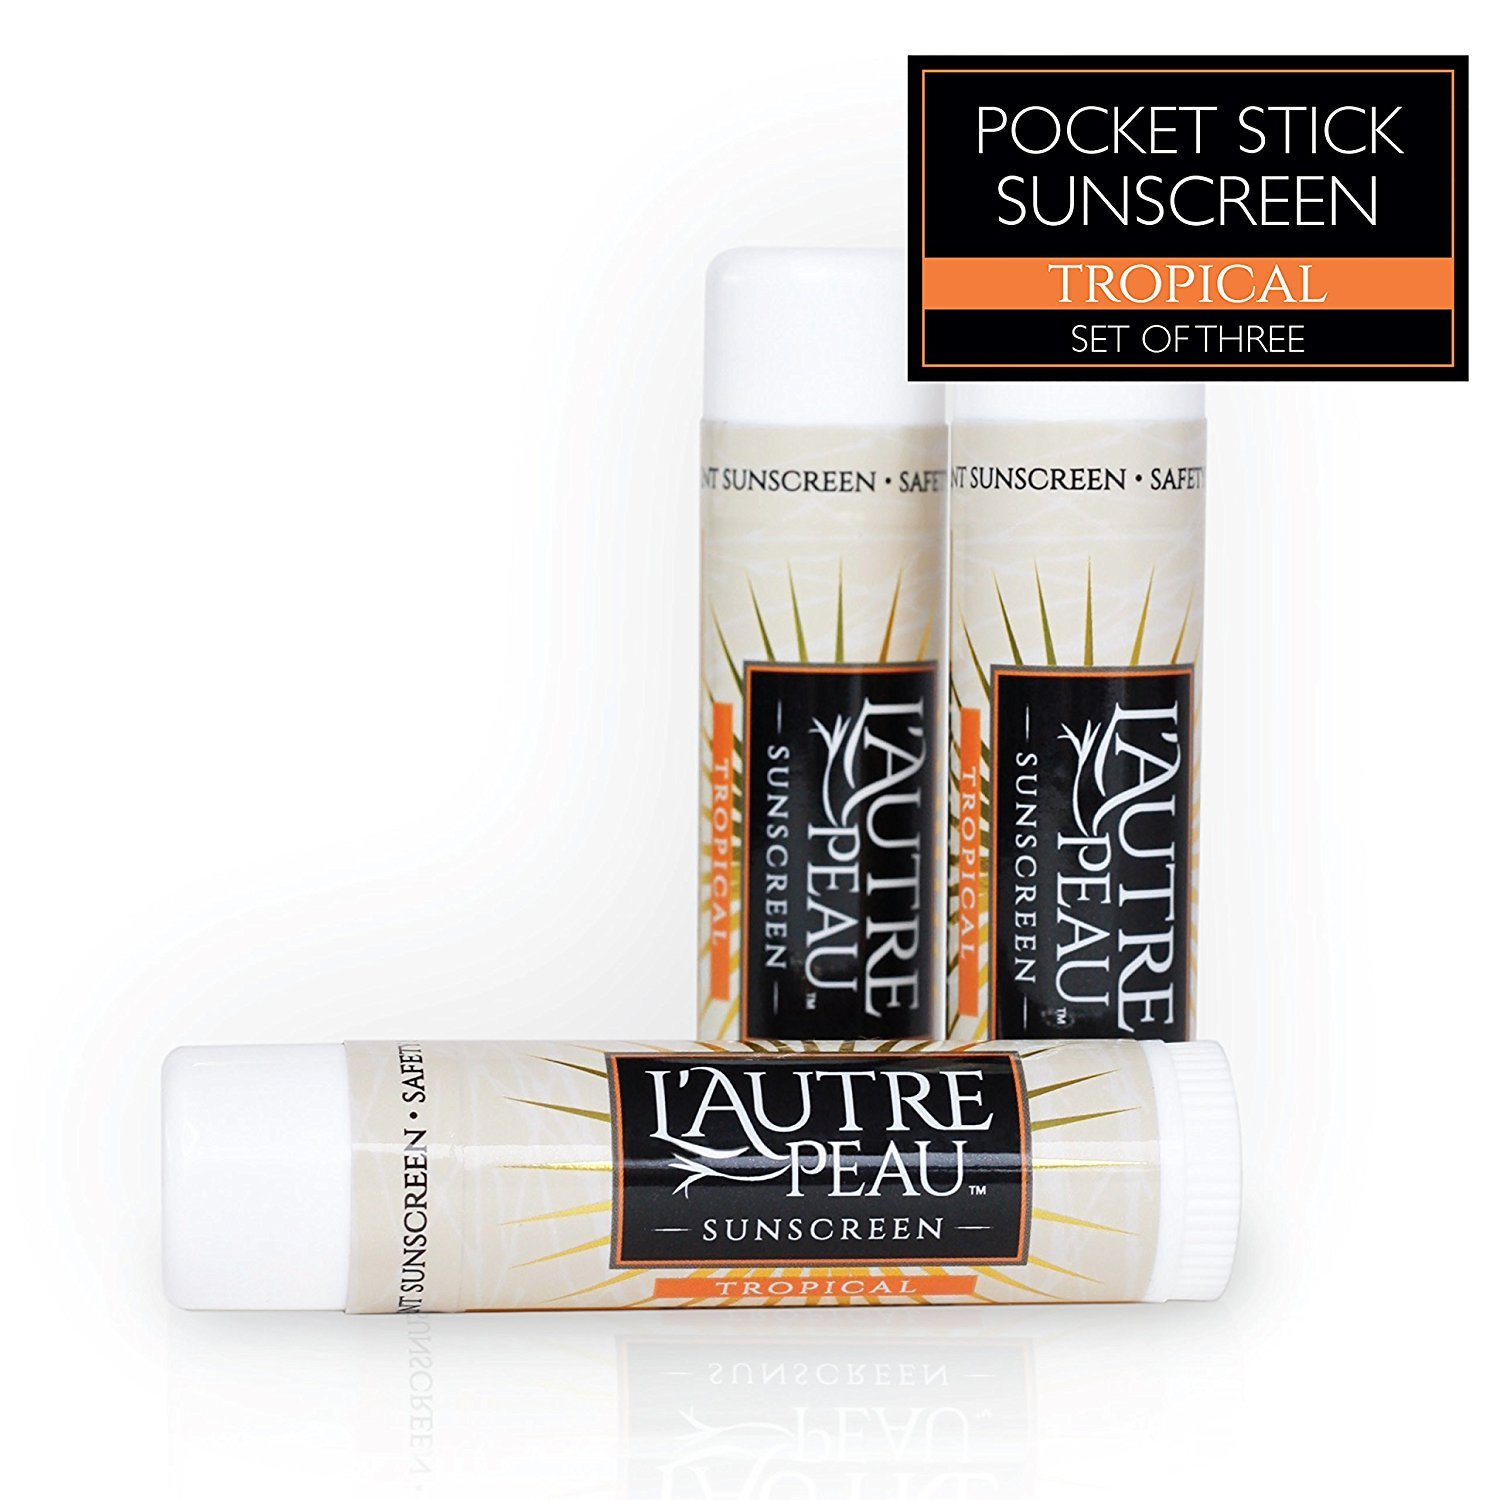 L'AUTRE PEAU SPF 30 Travel Size Sunscreen by L'AUTRE PEAU - Water Resistant Tropical Scent - Pocket Stick for Men Women and Kids - Non Greasy Broad Spectrum Protection - 3 Pack (0.7 oz)